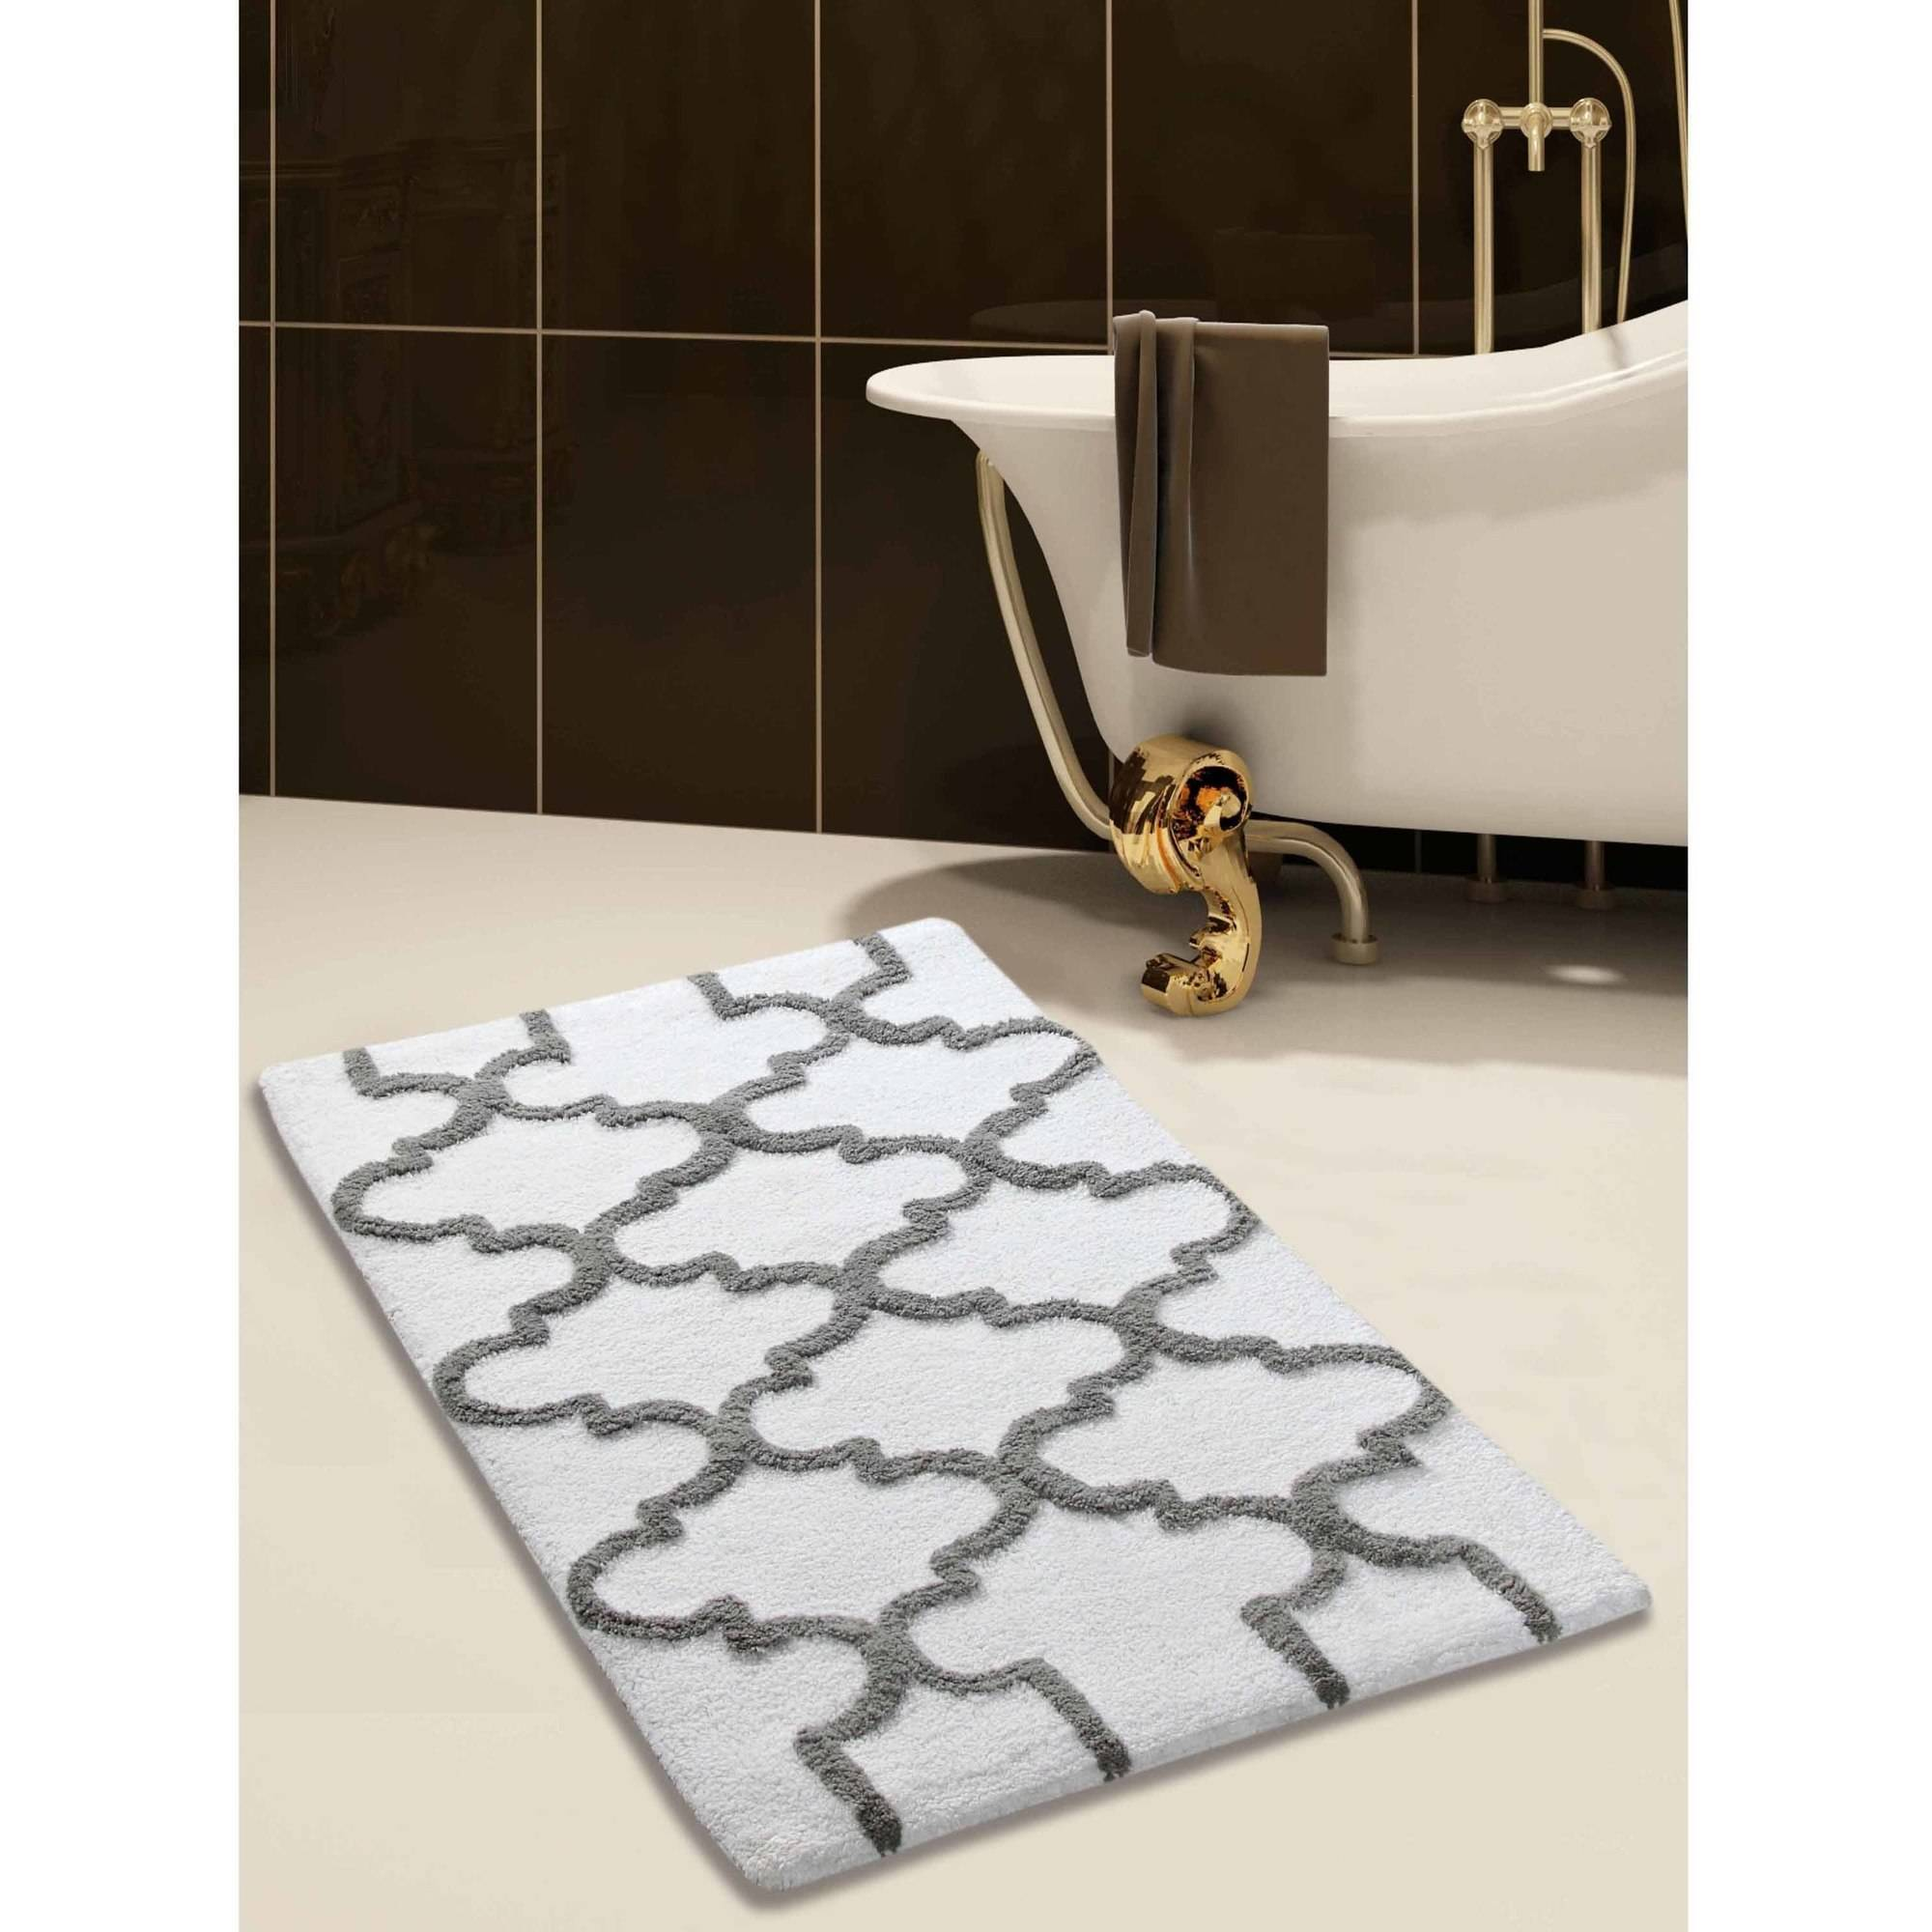 Saffron Fabs Bath Rug, Geomatric Pattern, Assorted Colors and Sizes